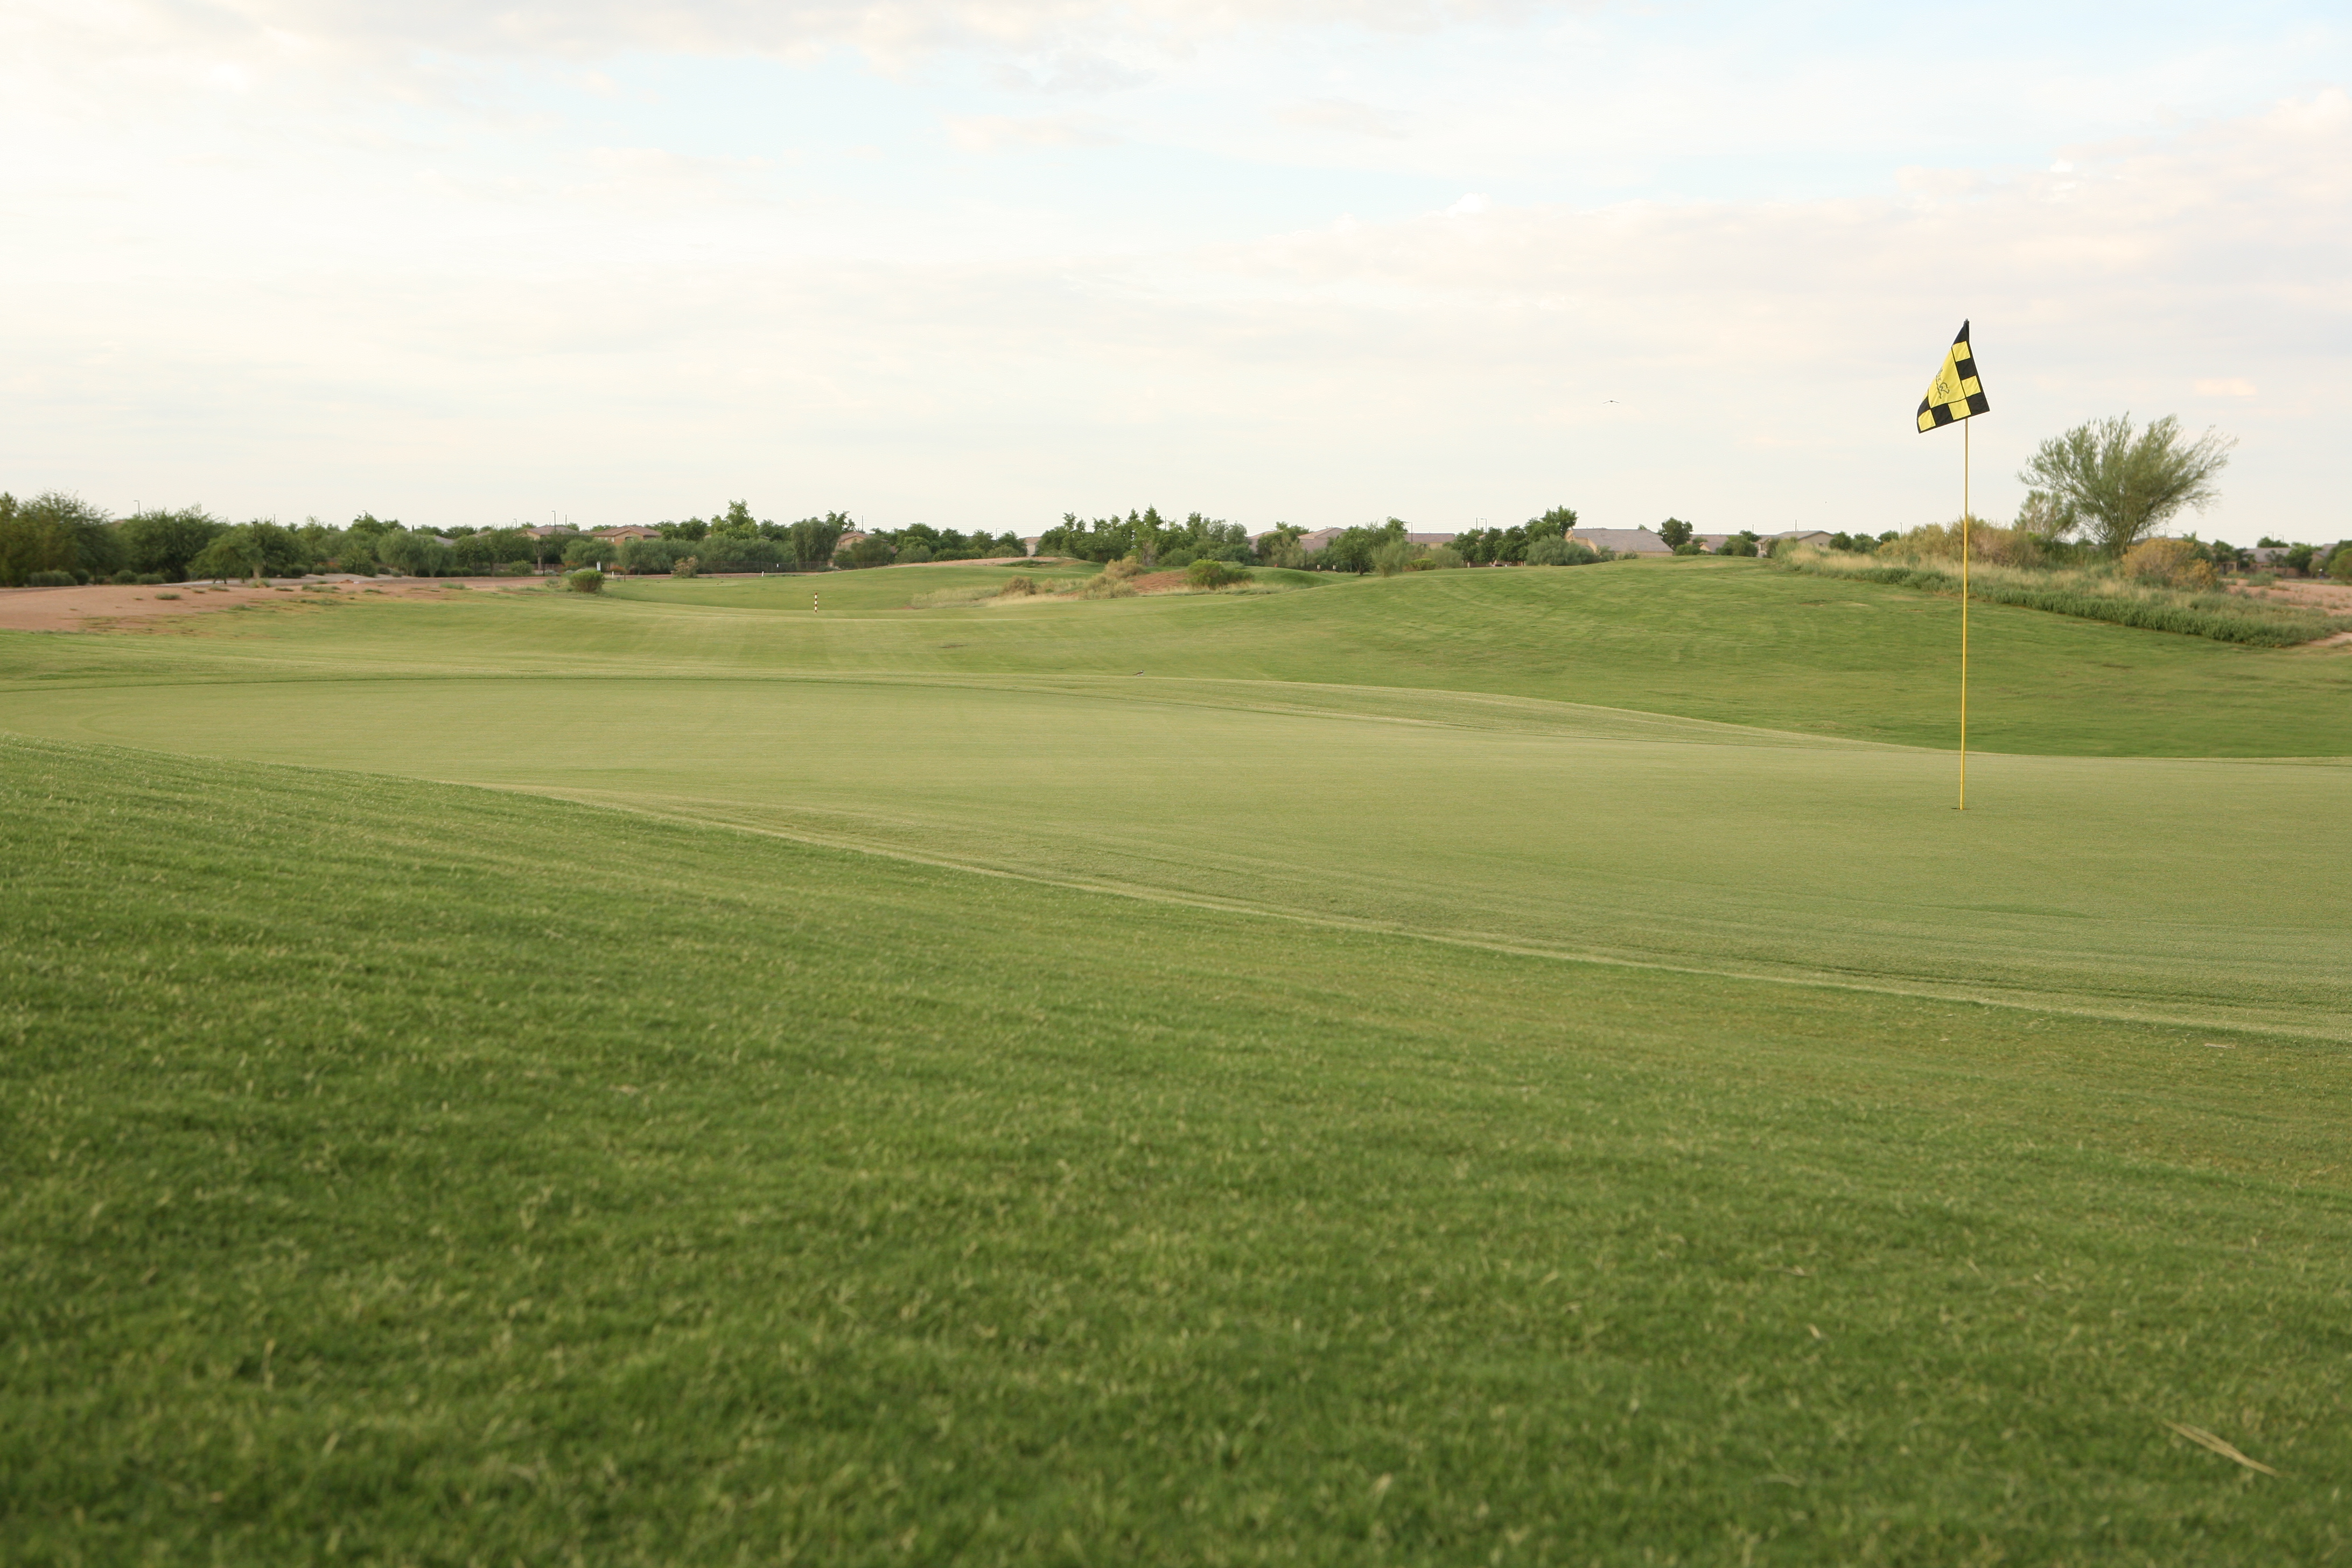 bear creek golf range executive summary Not your grandfather's driving range  pointing his golf club like babe ruth at a large,  a former fedex executive who has been topgolf's ceo since last year.